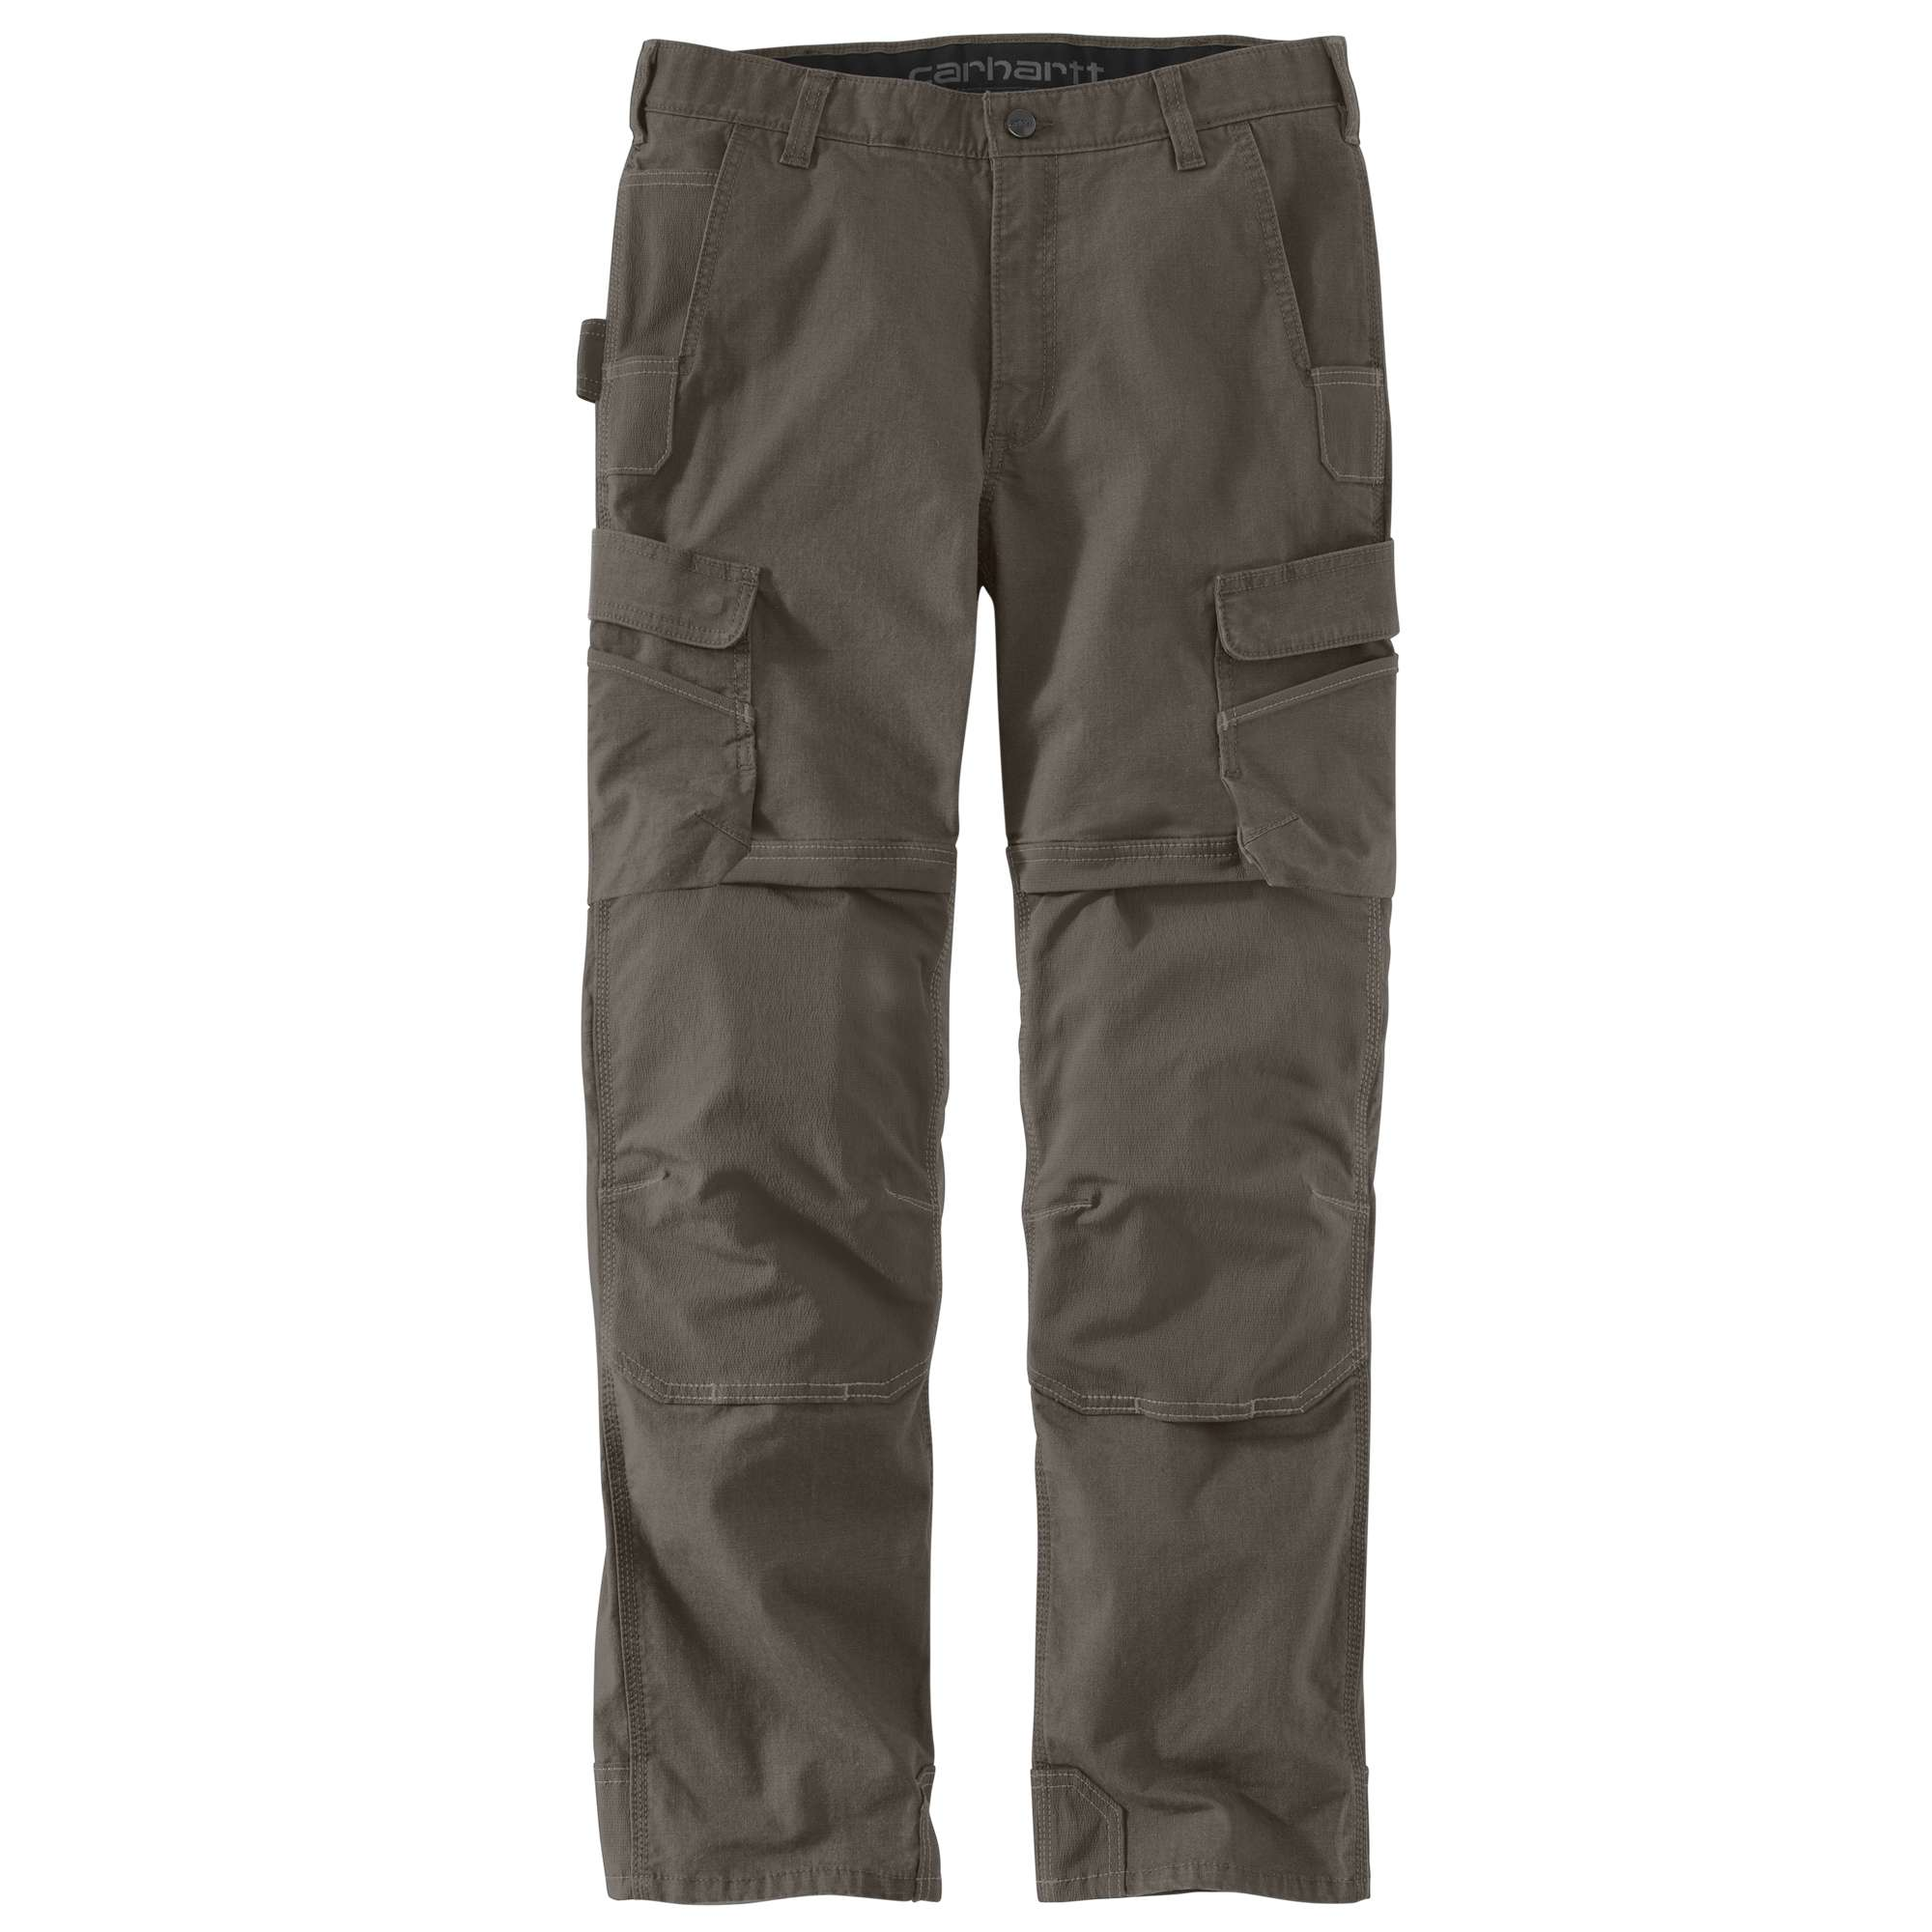 MEN'S FULL SWING® STEEL CARGO PANT